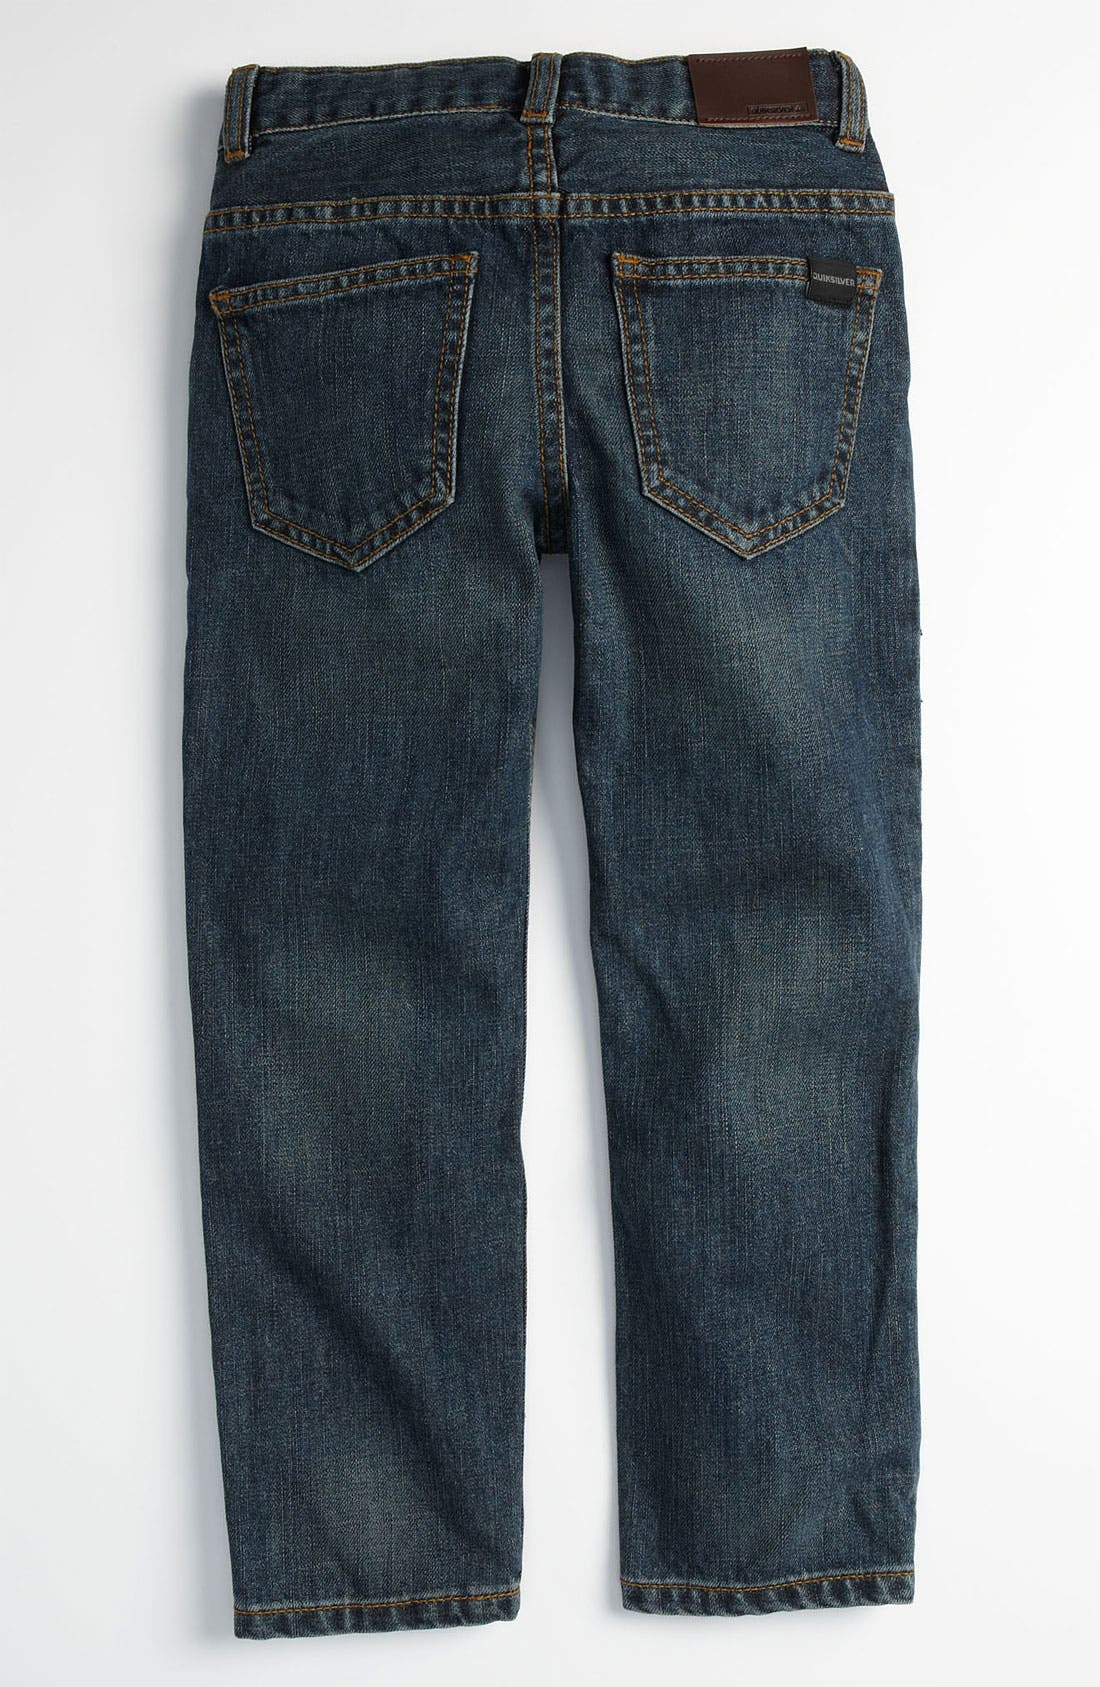 Main Image - Quiksilver 'Distortion' Jeans (Big Boys)